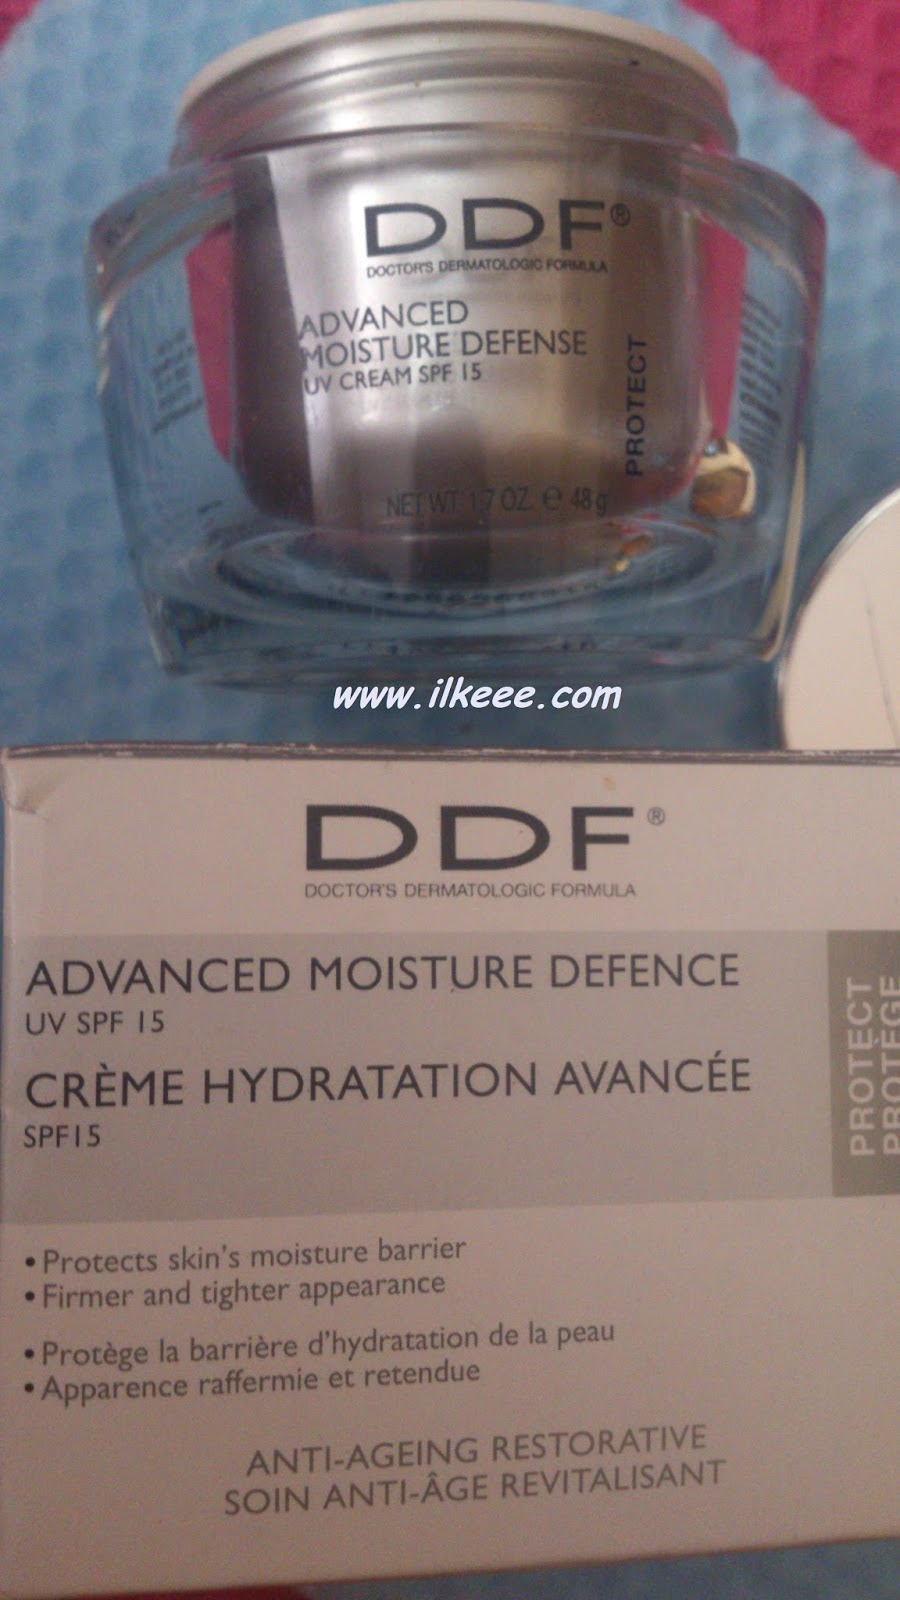 Kuru cilt ve nemlendirici - DDF nemlendirici kullananlar - DDF Advannced Mouisture Defense Uv Cream Spf 15 - DDF Advannced Mouisture Defense Uv Cream Spf 15 kullananlar -DDF nemlendirici ve onarıcı krem